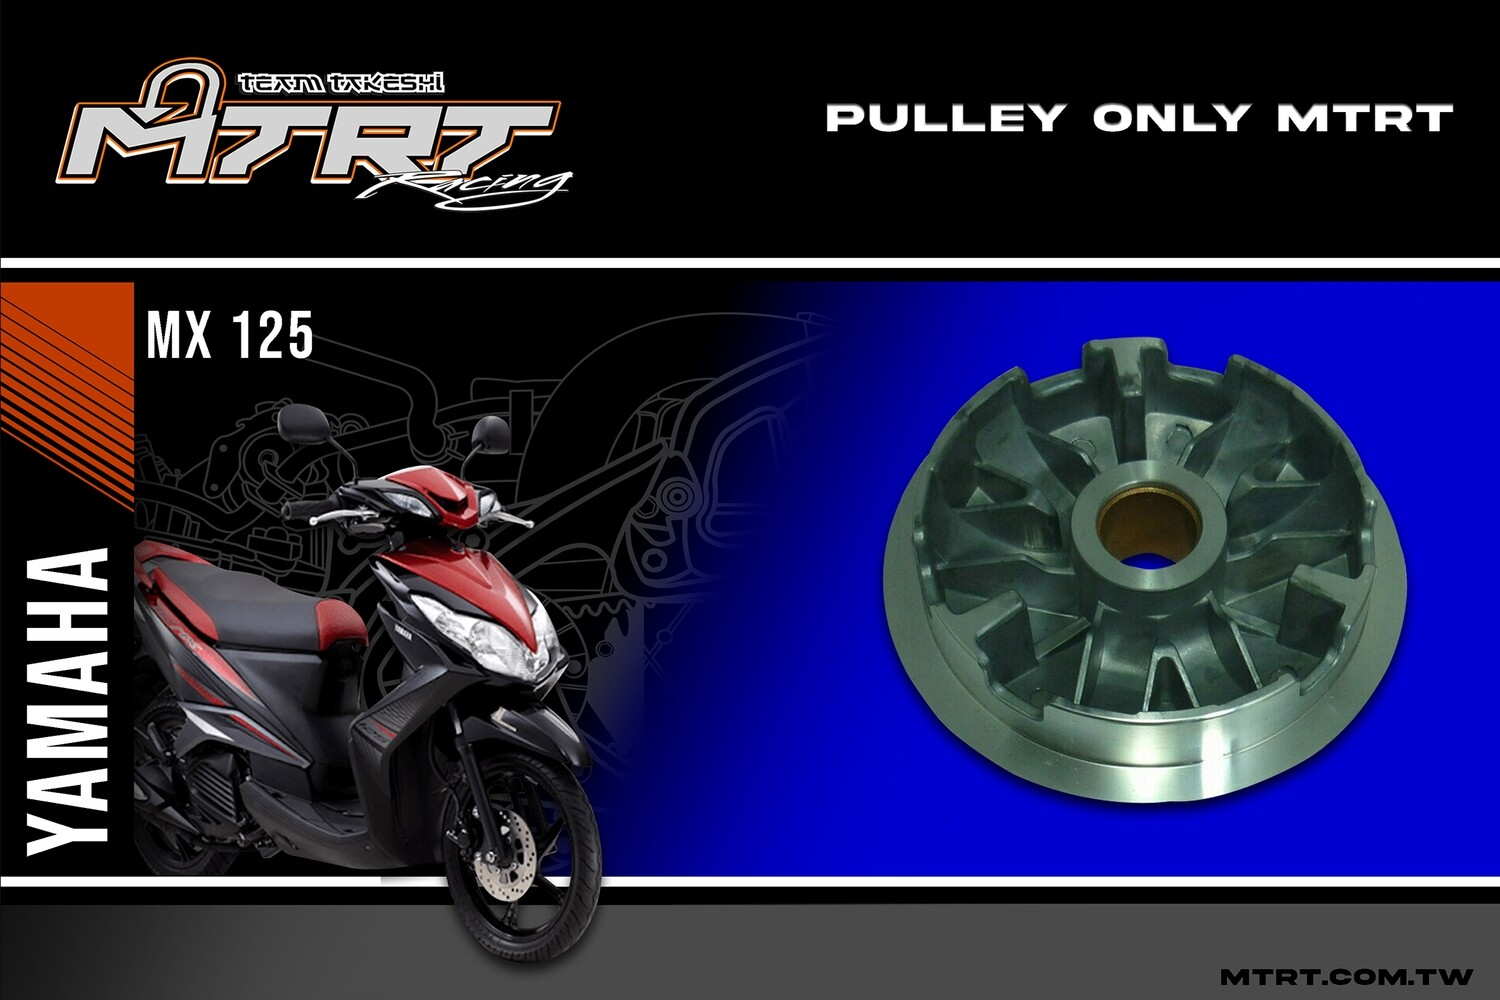 PULLEY  ONLY  MIO5  MTRT